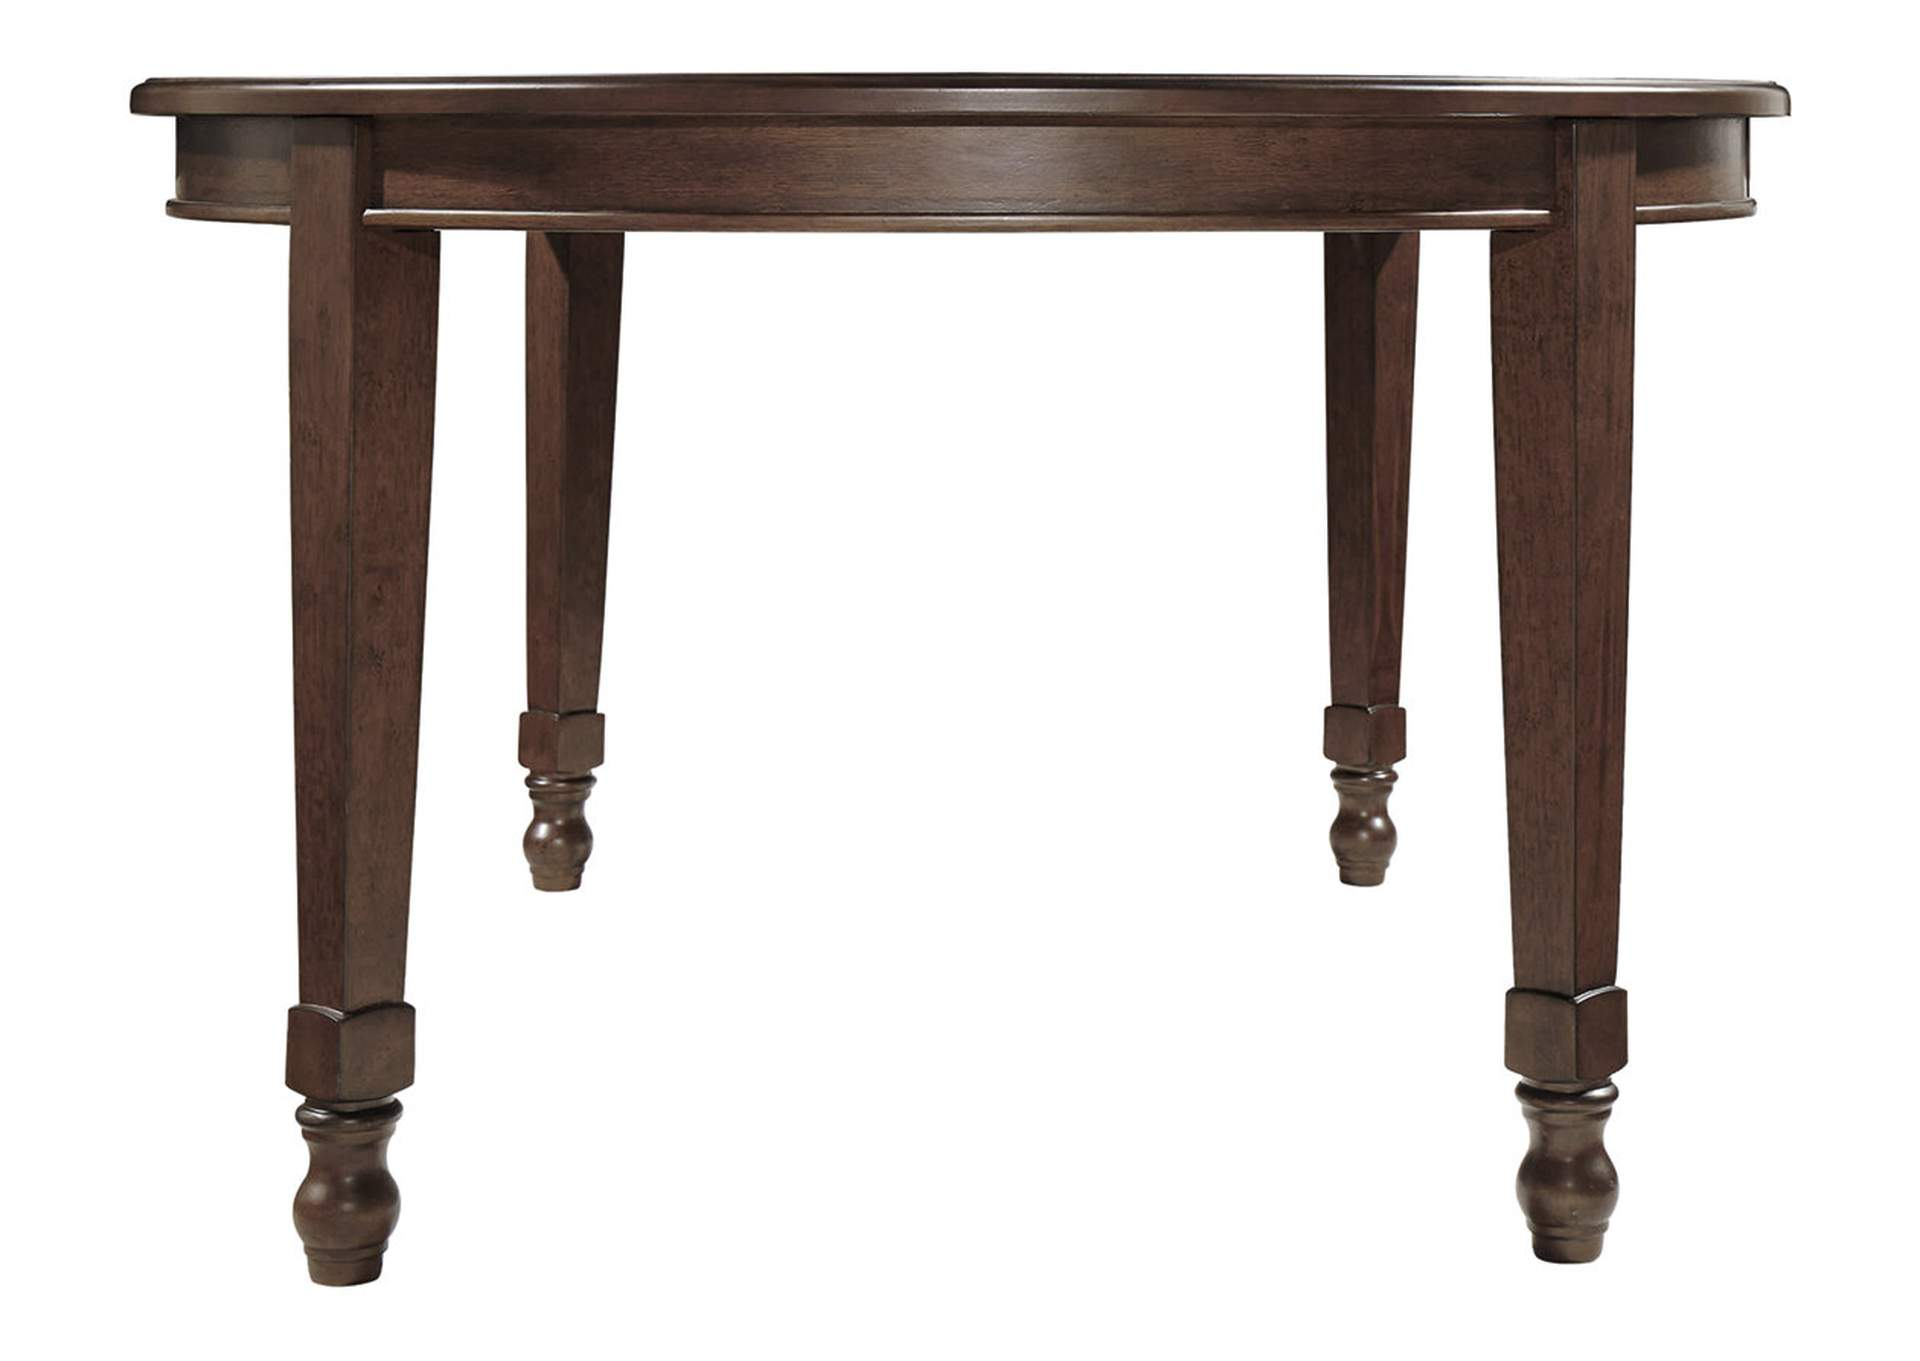 Adinton Reddish Brown Dining Extendable Table,Signature Design By Ashley